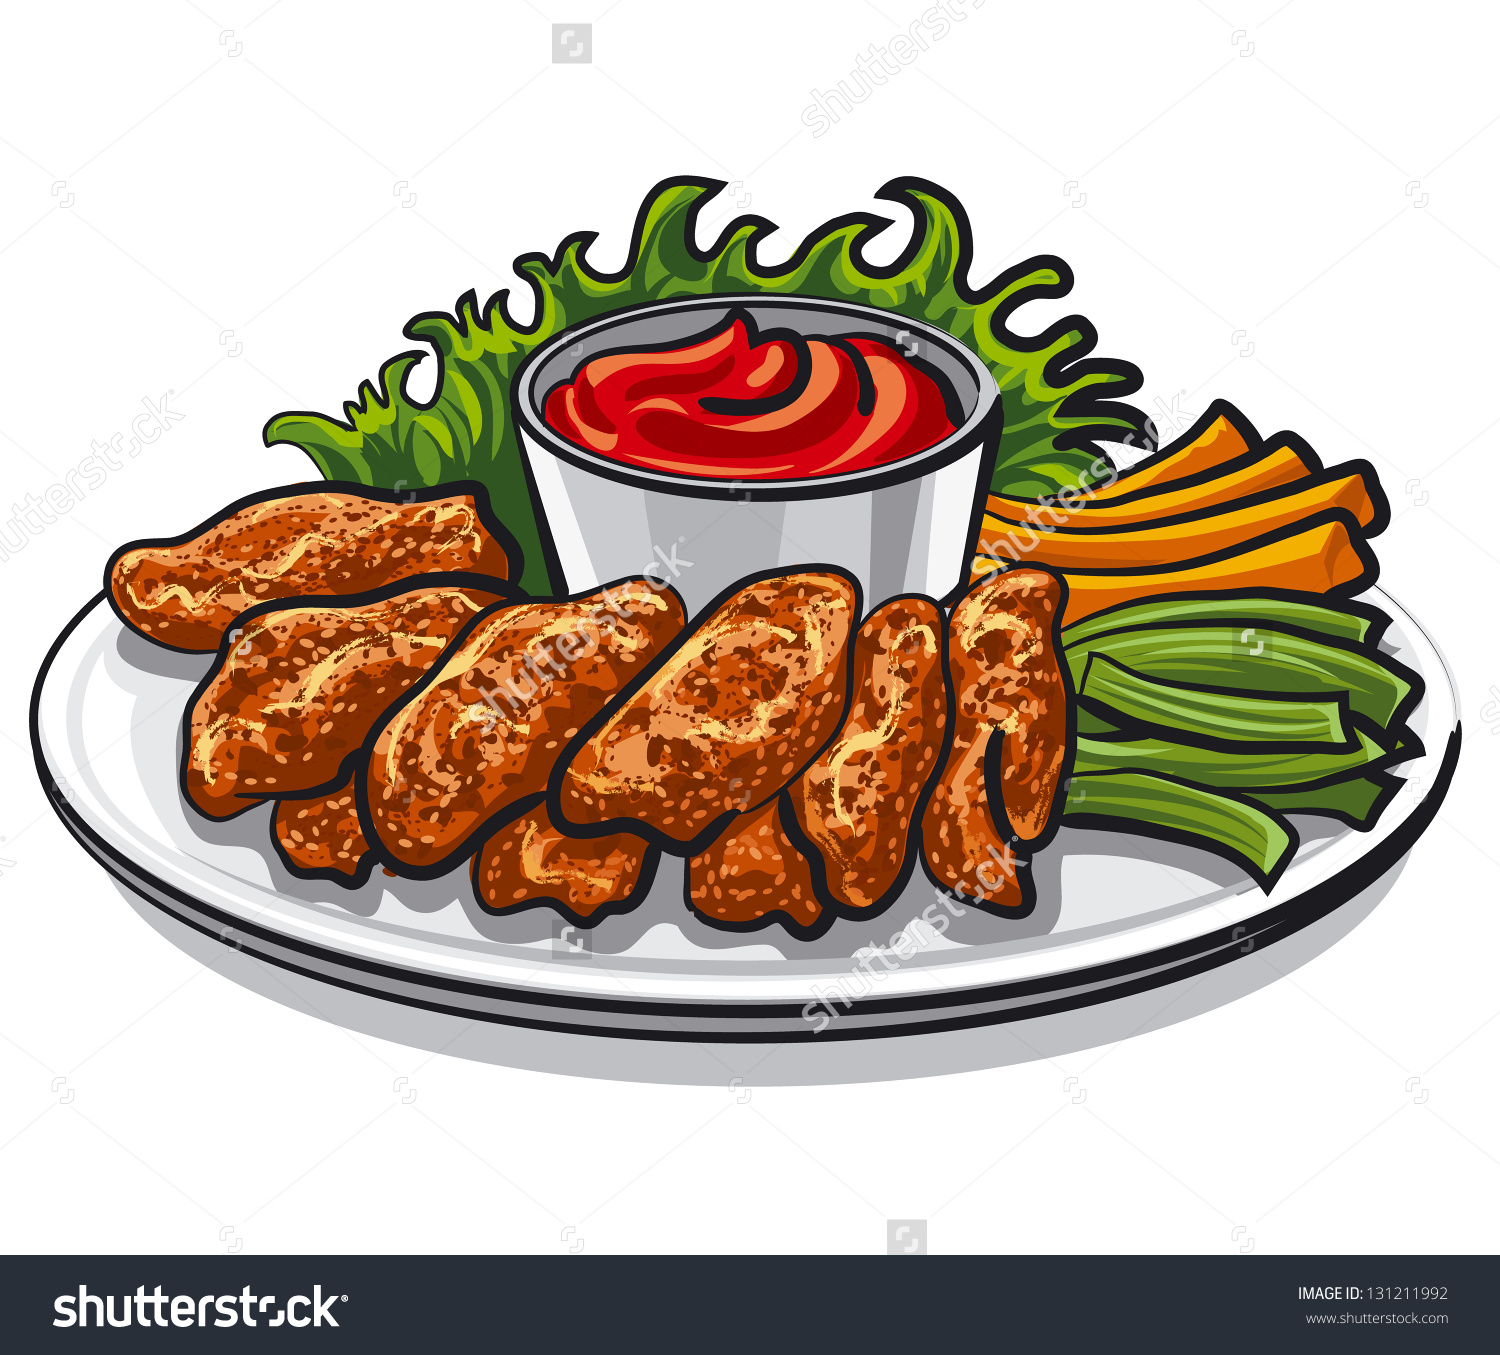 Appetizers clipart fried chicken wing.  collection of free